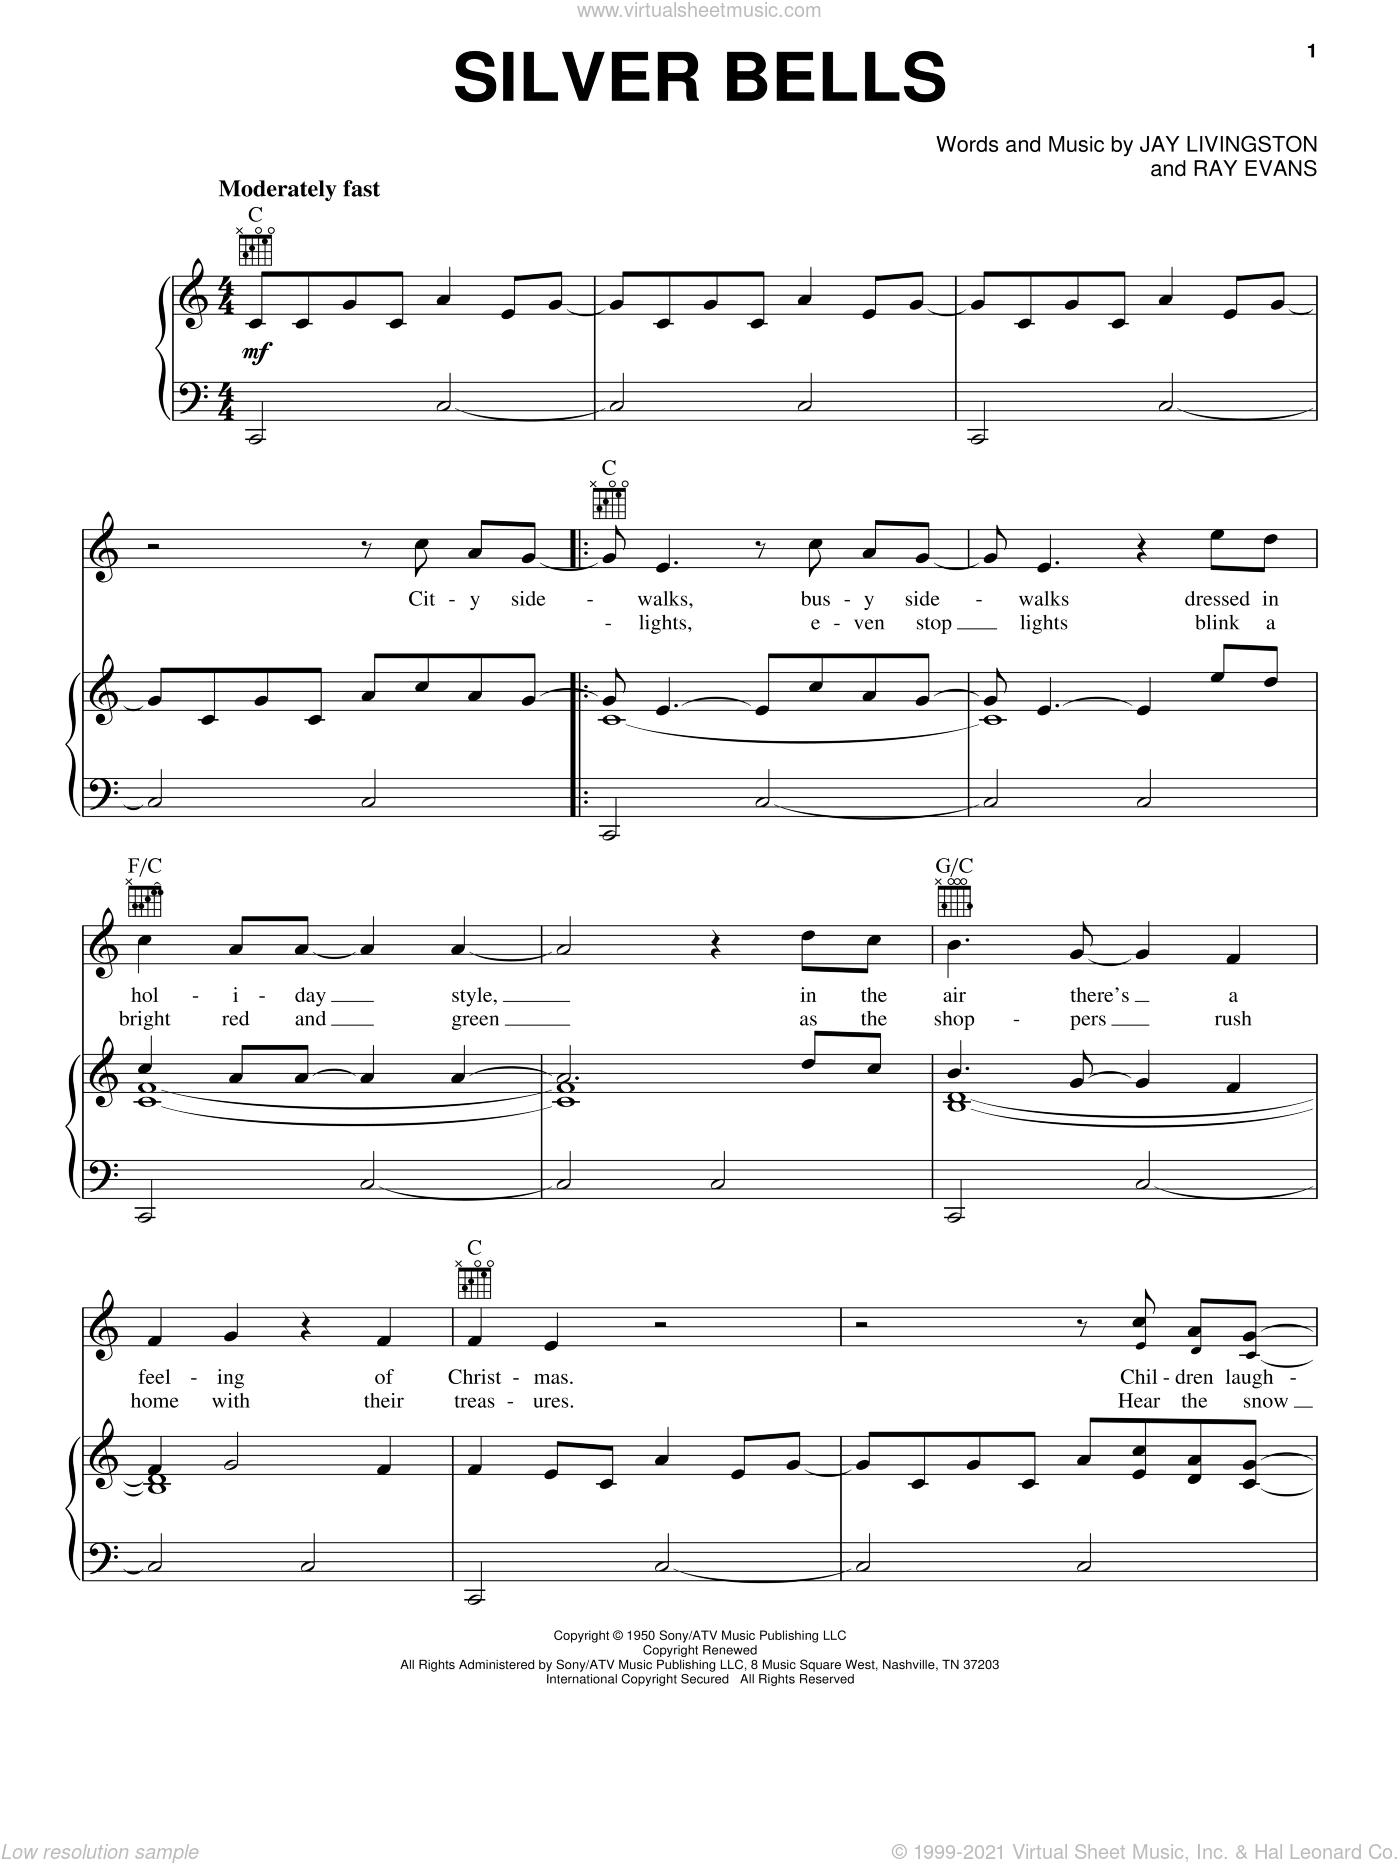 Silver Bells sheet music for voice, piano or guitar by Lady A and Lady Antebellum, intermediate skill level